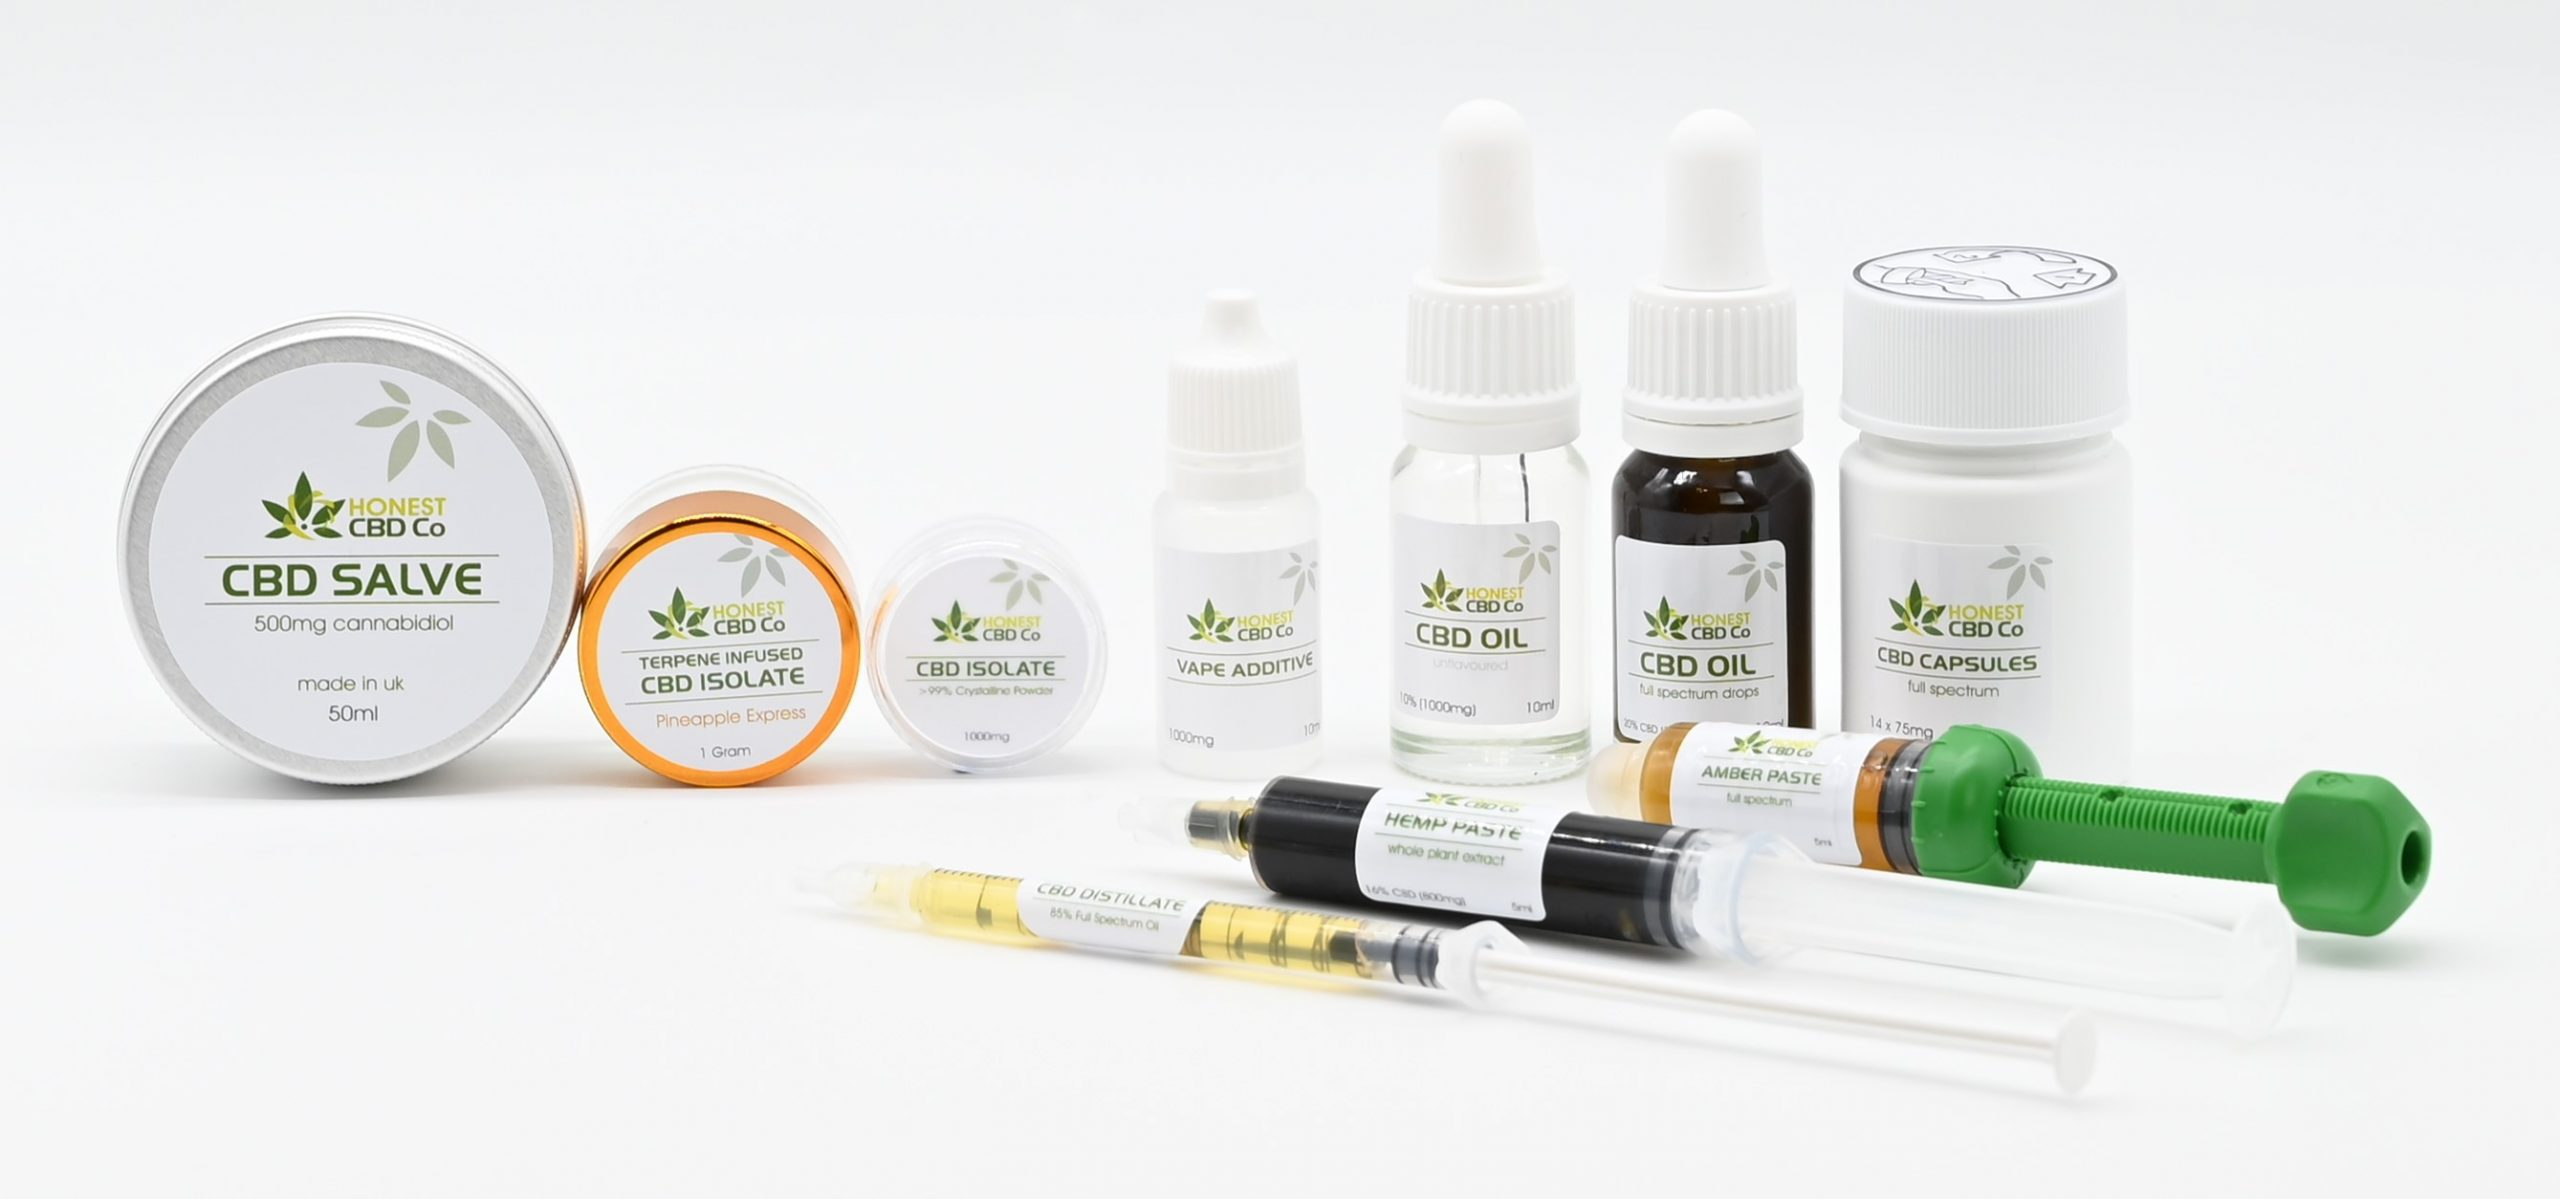 Honest CBD Co - Product Range